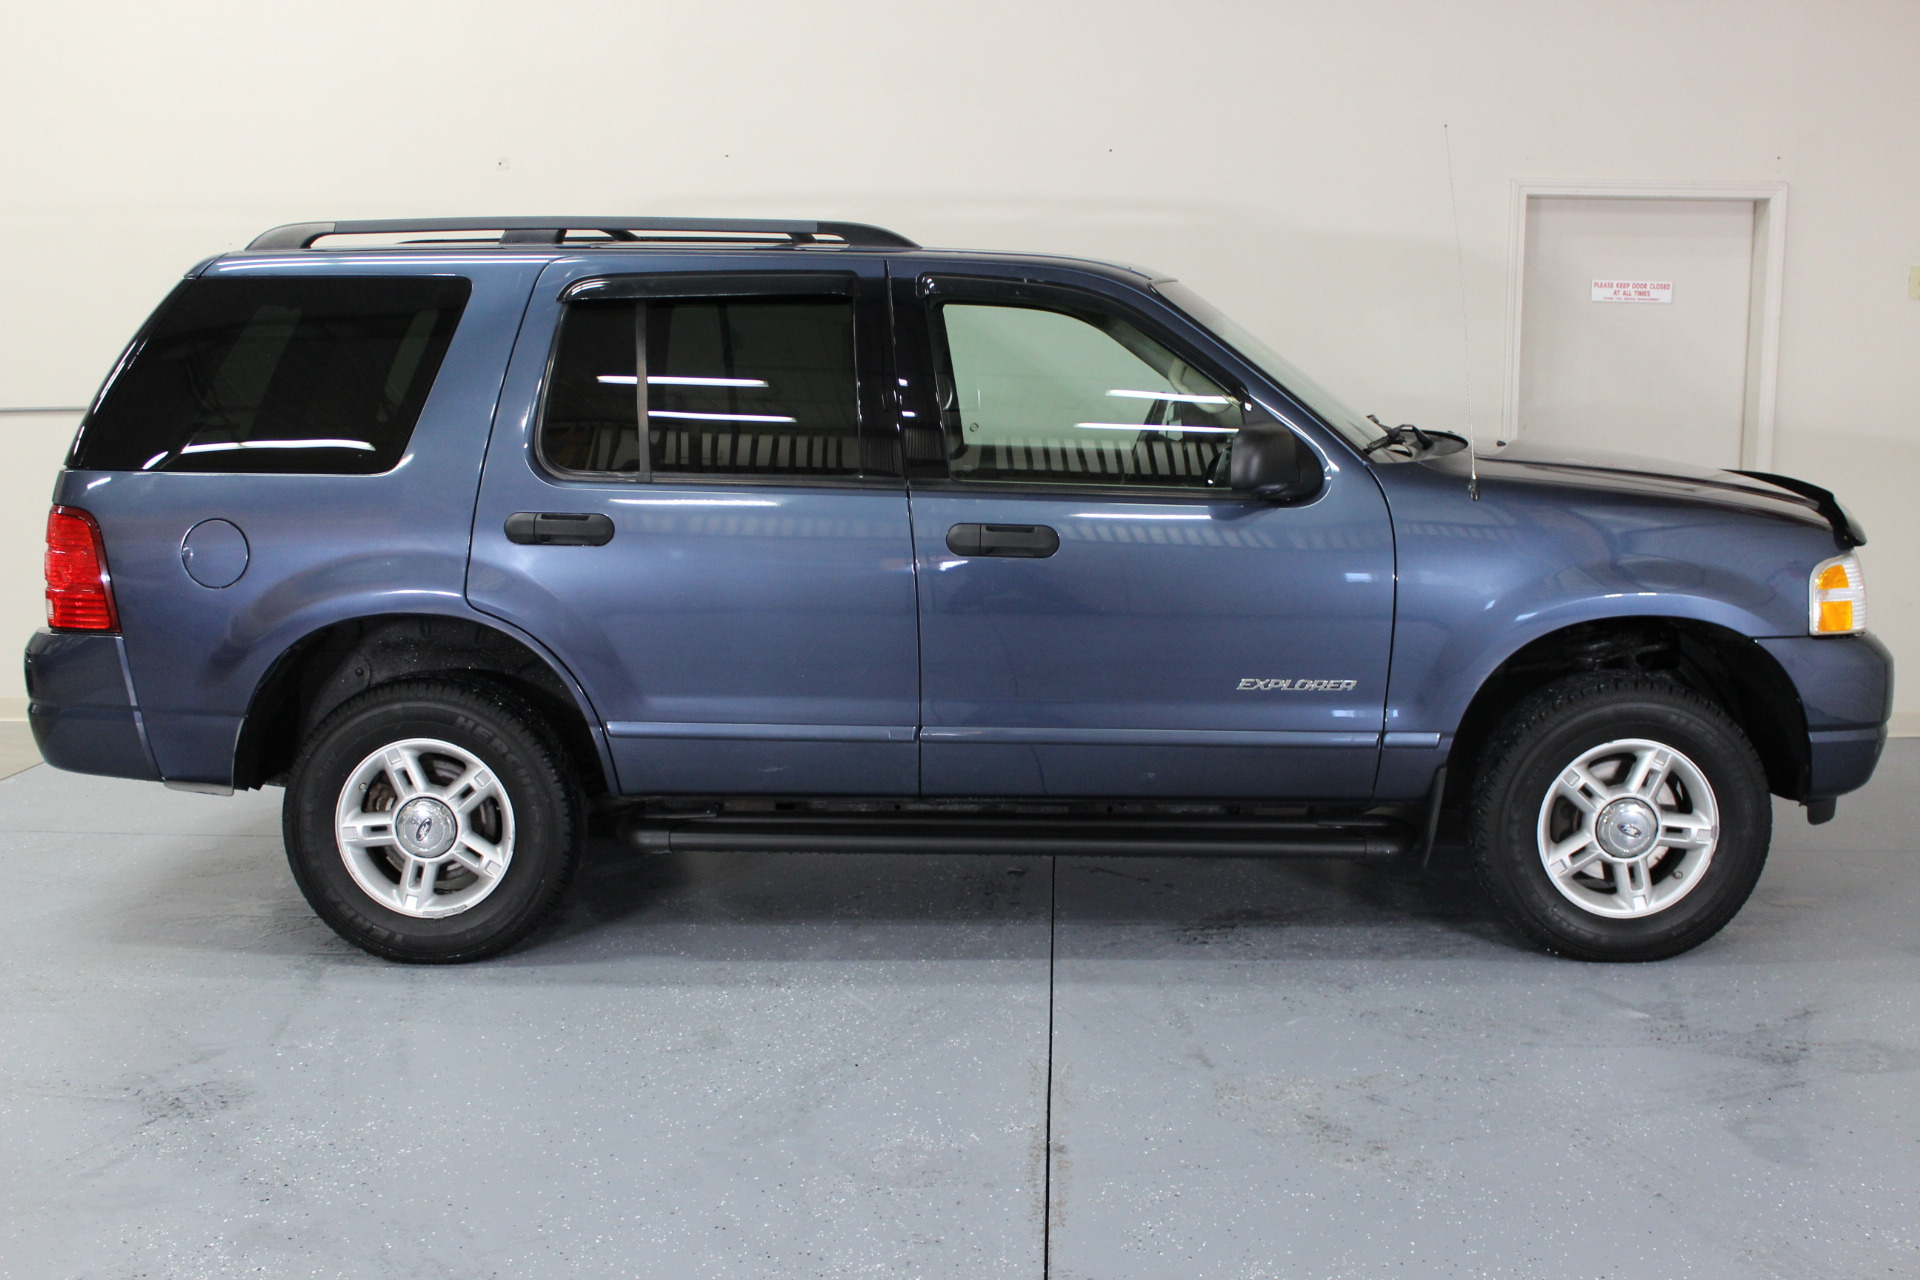 Ford Explorer Color Options >> 2004 Ford Explorer XLT - Biscayne Auto Sales | Pre-owned Dealership | Ontario, NY